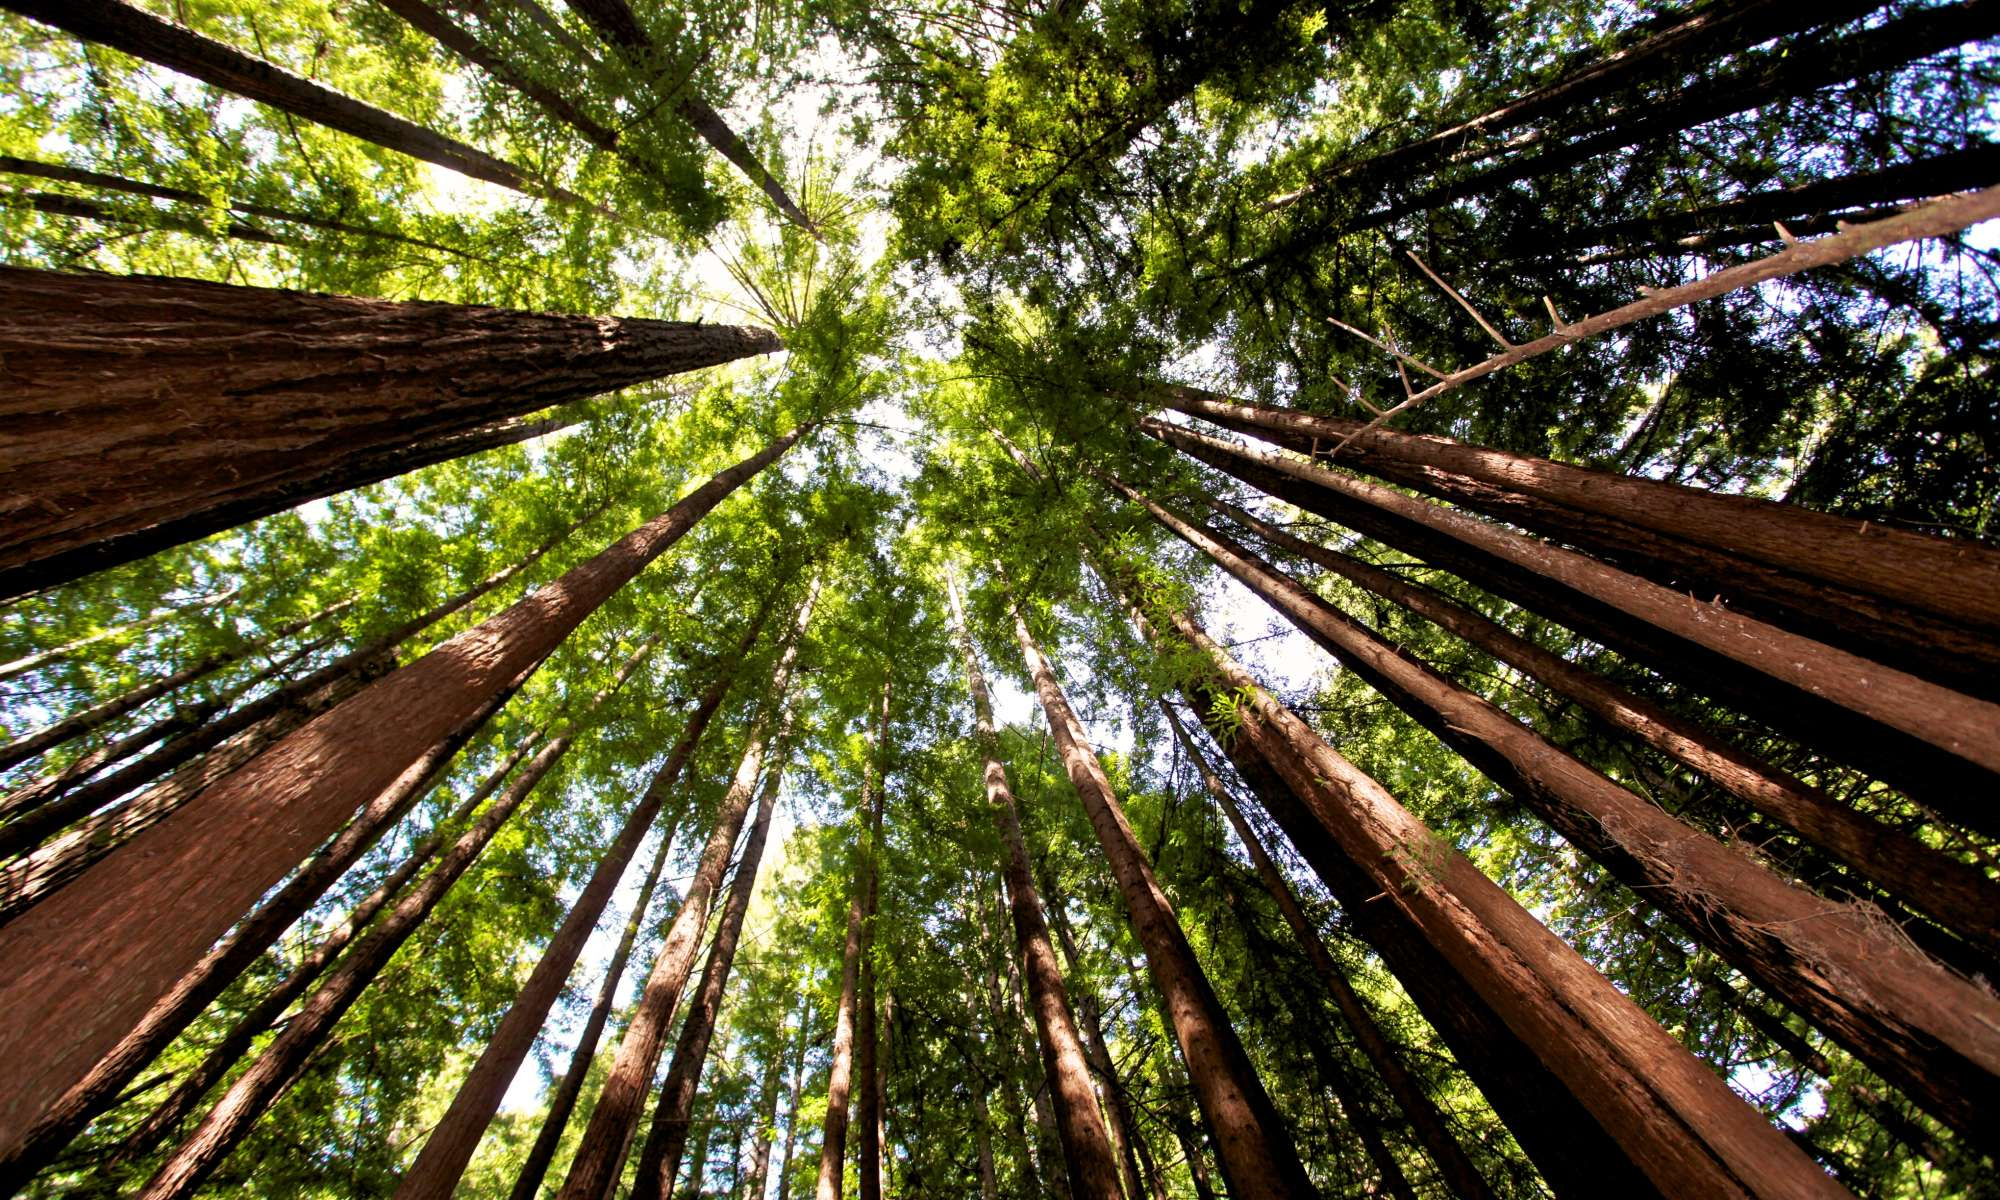 Help Plant 1 Million Redwoods